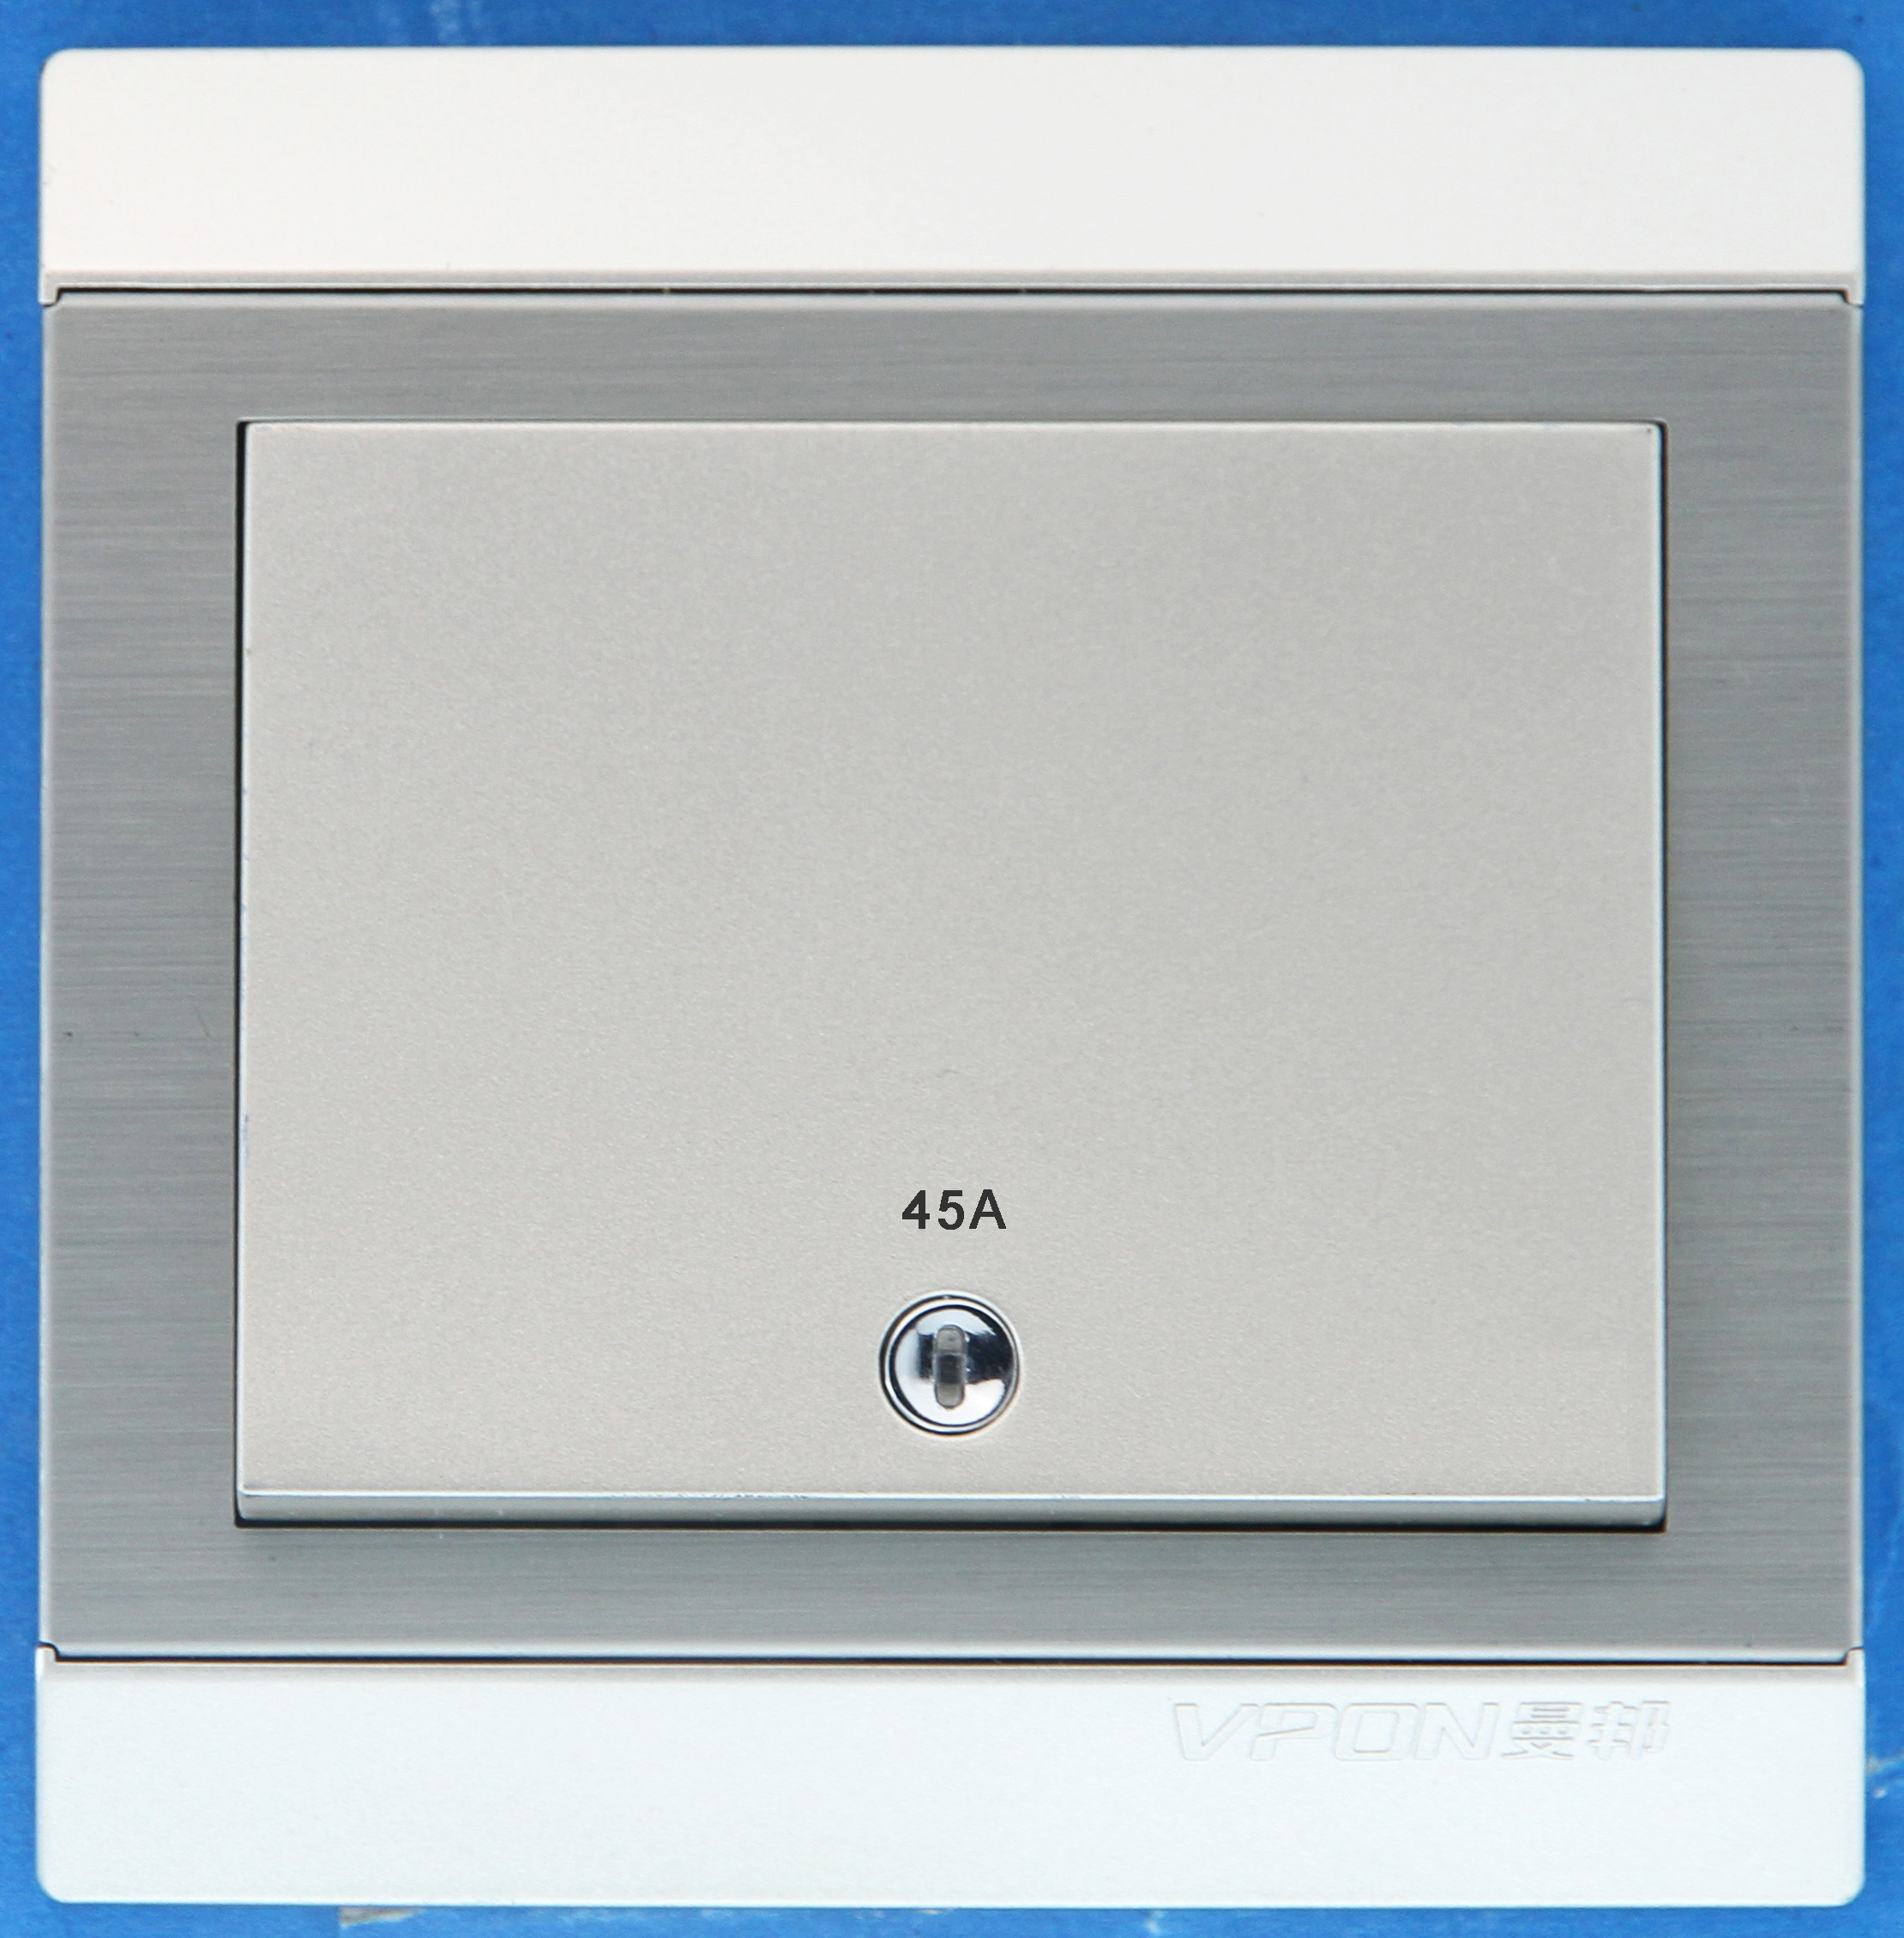 45A D/P wall switch with led